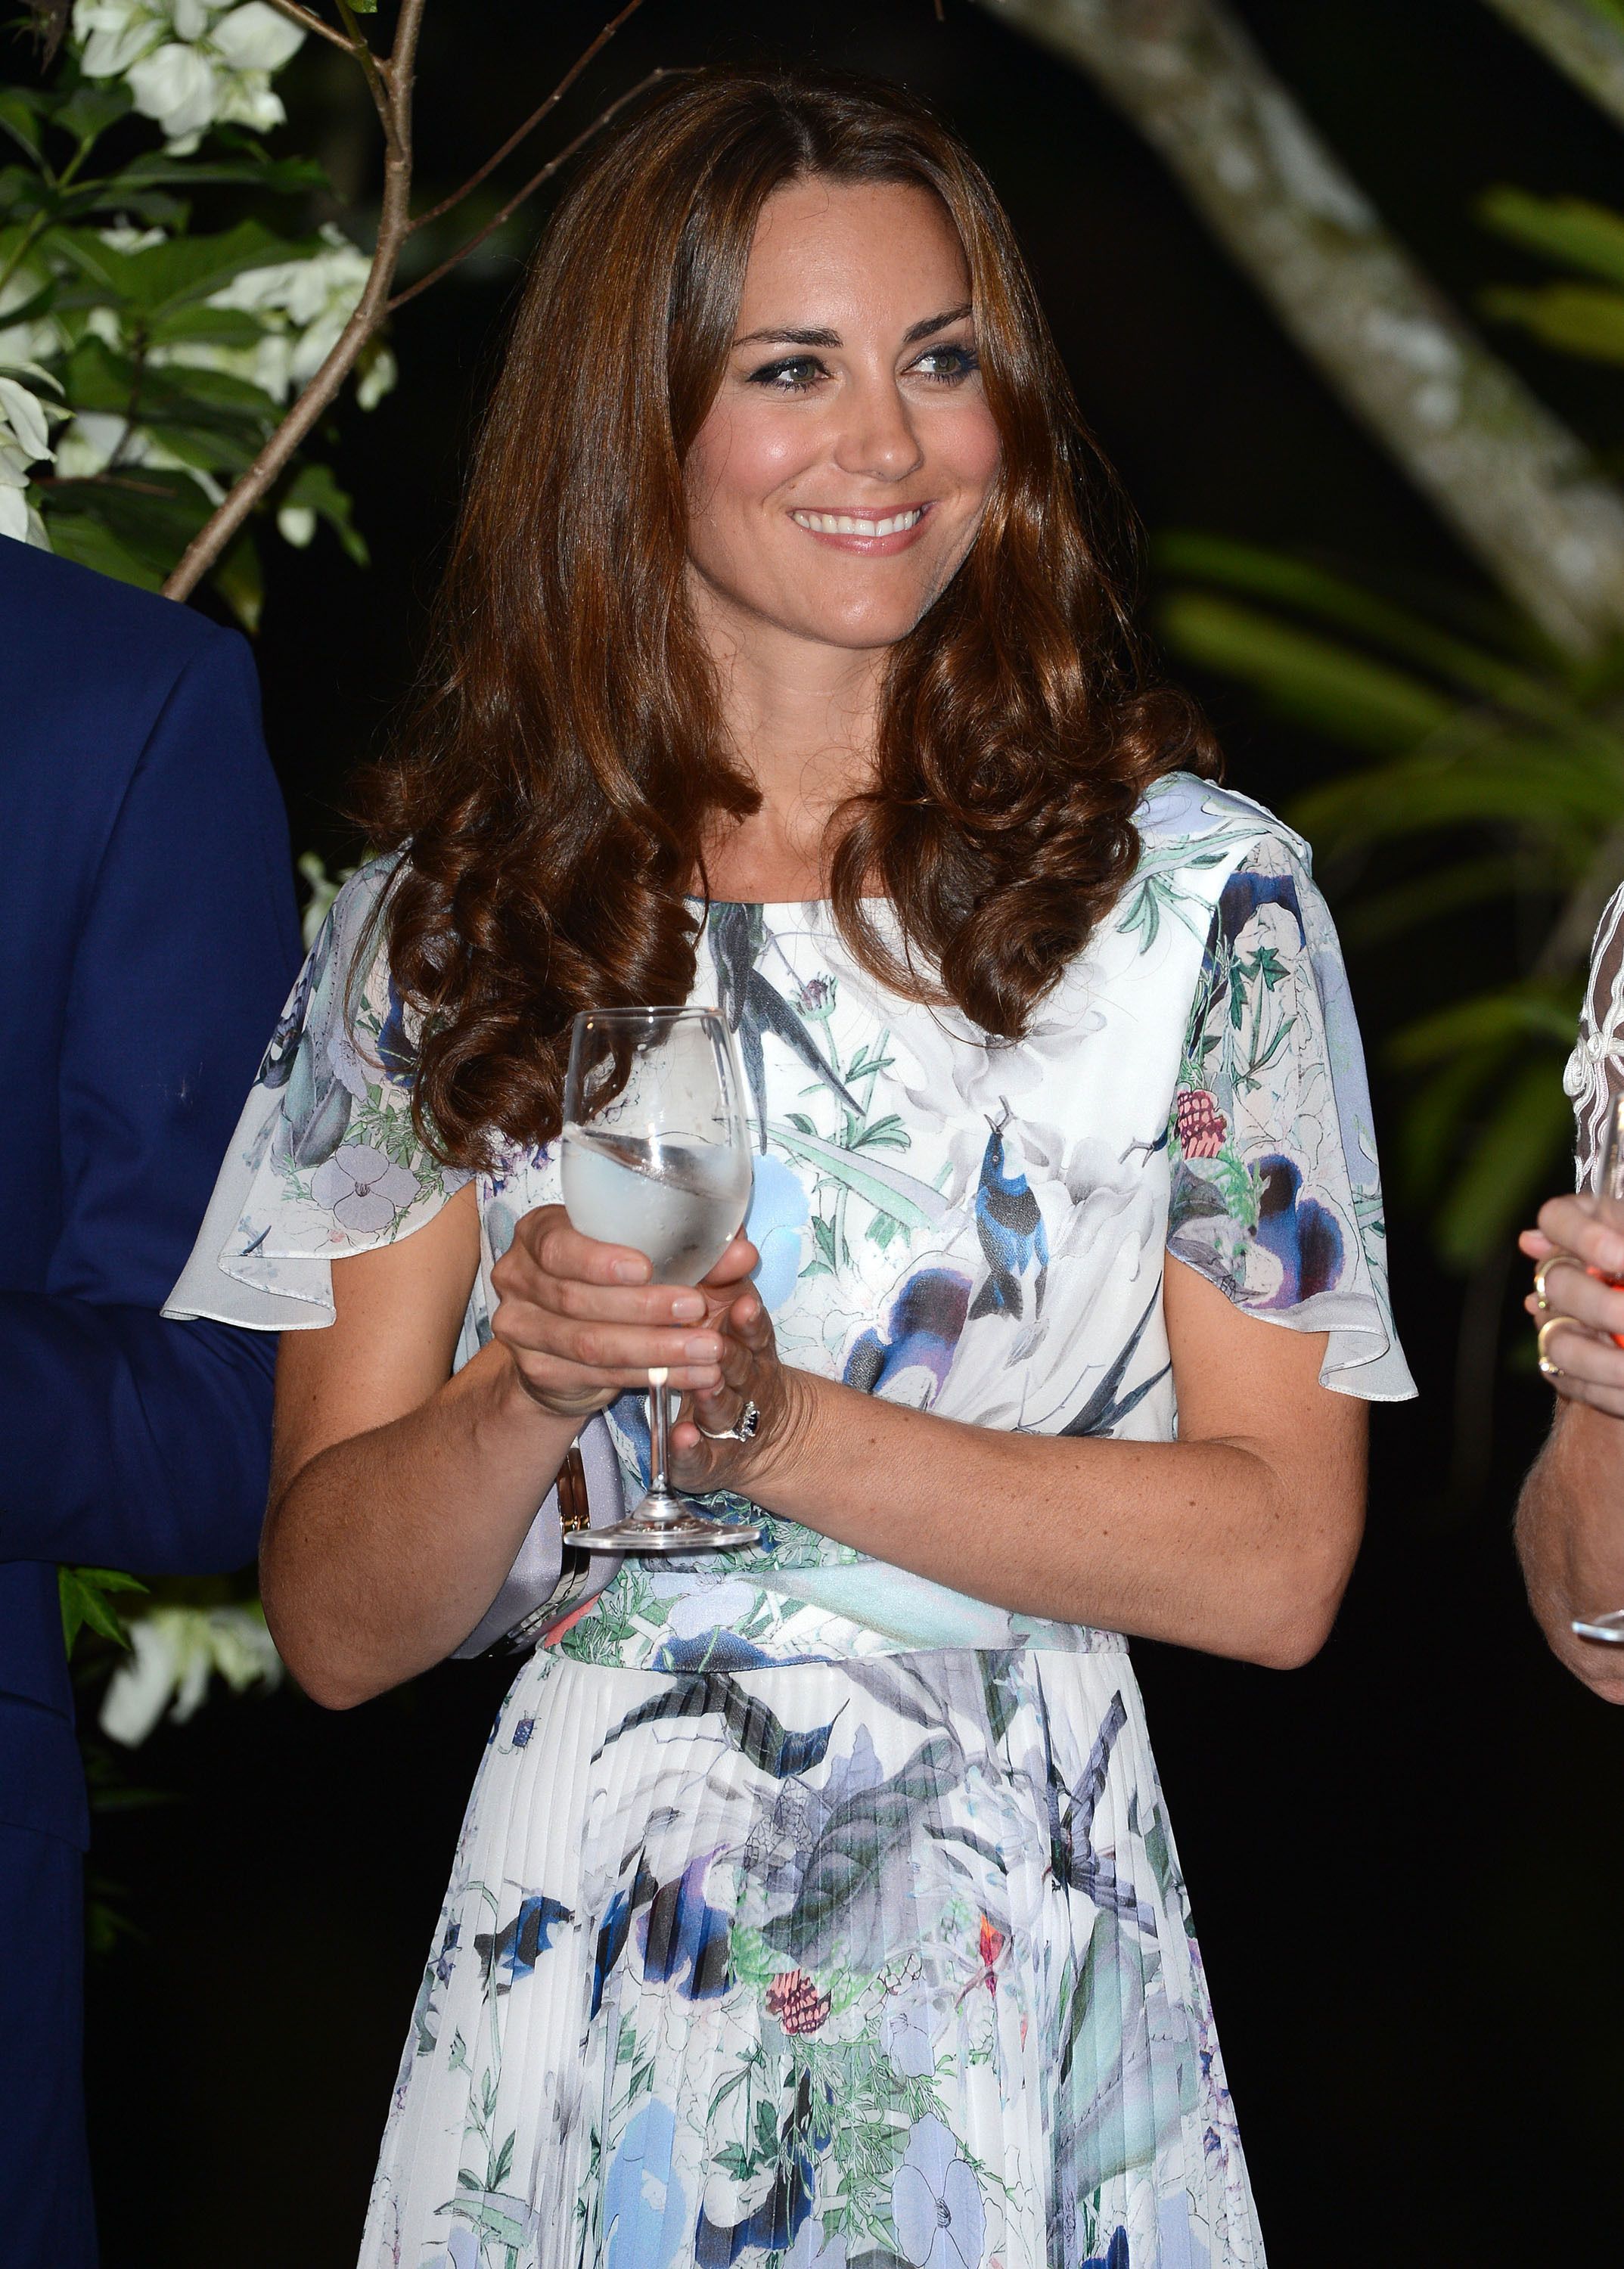 Kate Middleton water glass